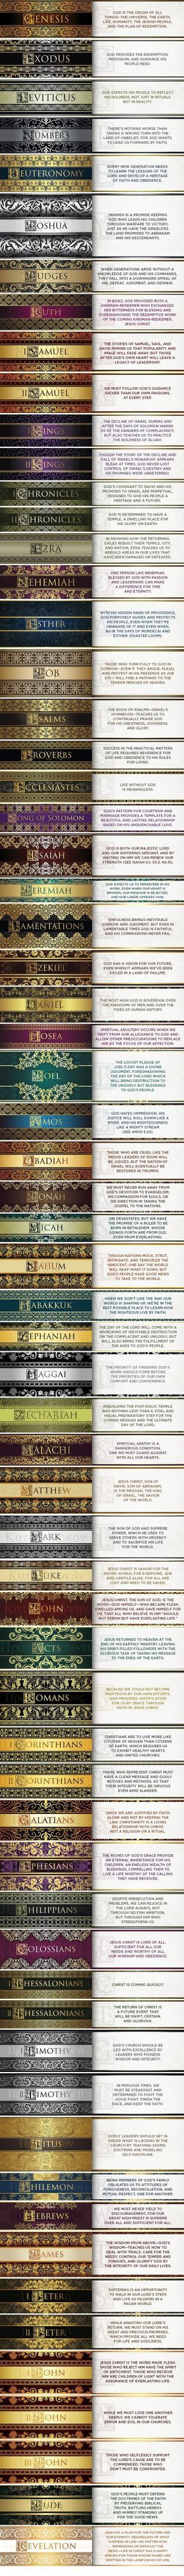 Beautiful Overview of the Bible - Take the fastest journey through the Bible you have ever experienced! by theresa